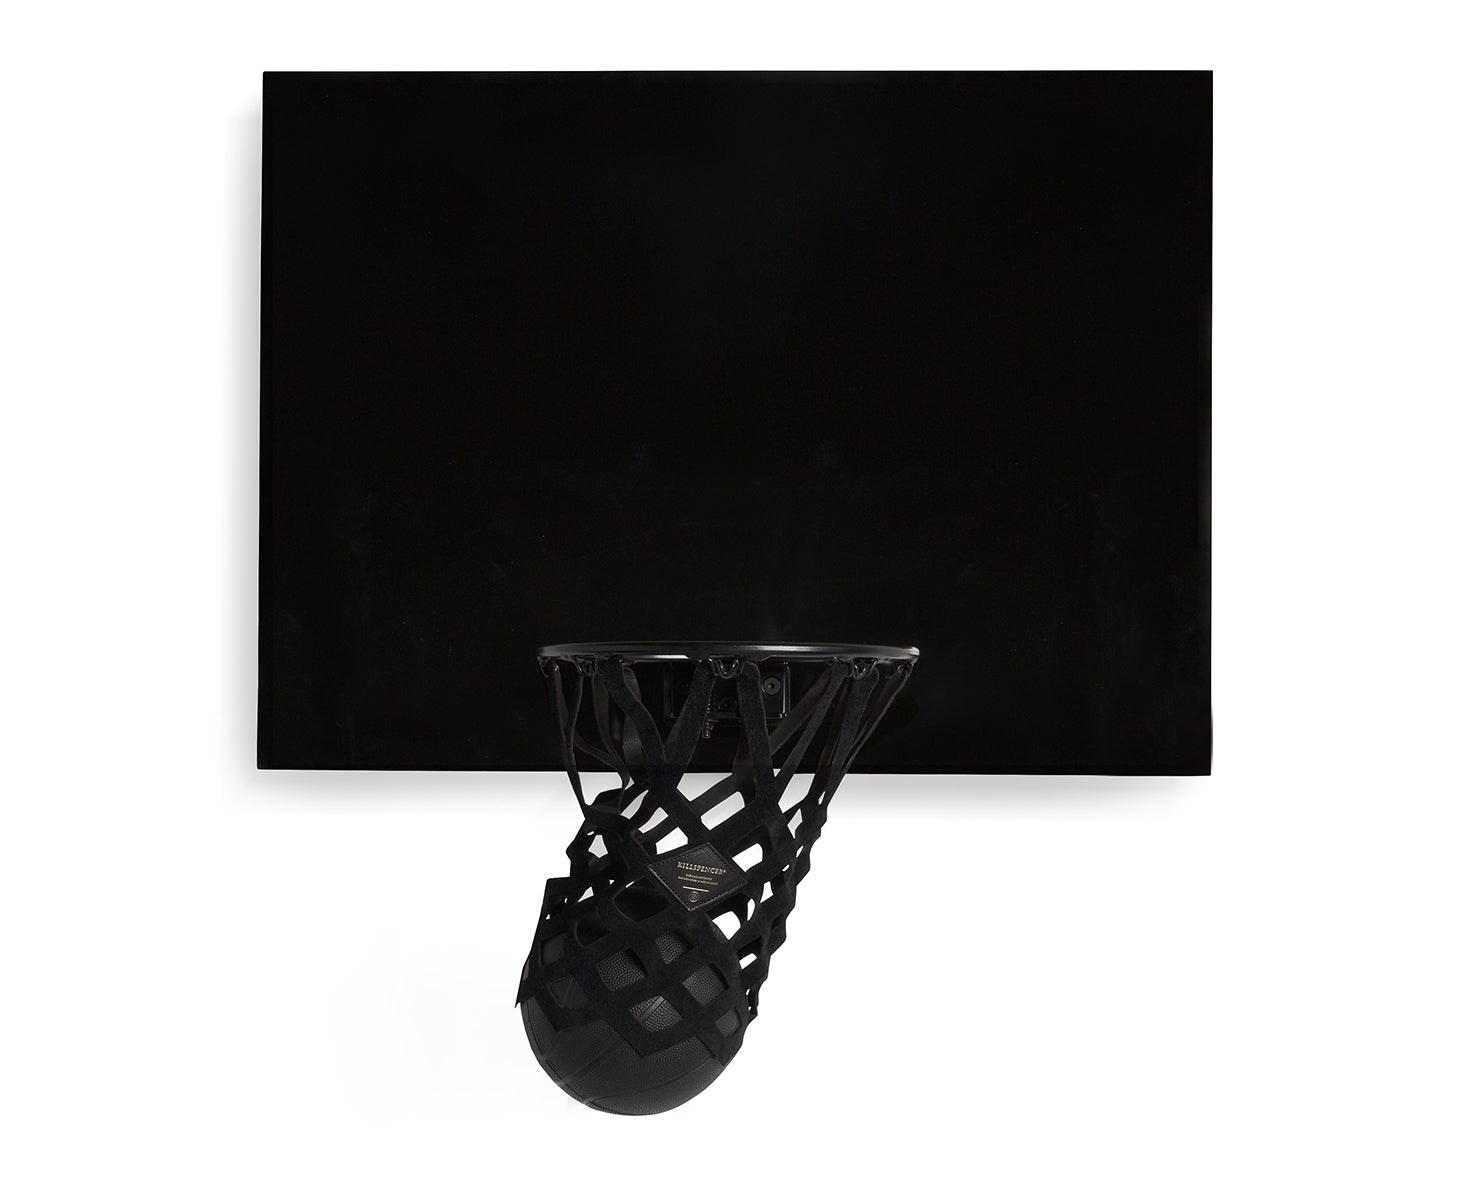 INDOOR MINI BASKETBALL KIT | KILLSPENCER® - Black Metal and Gloss Black